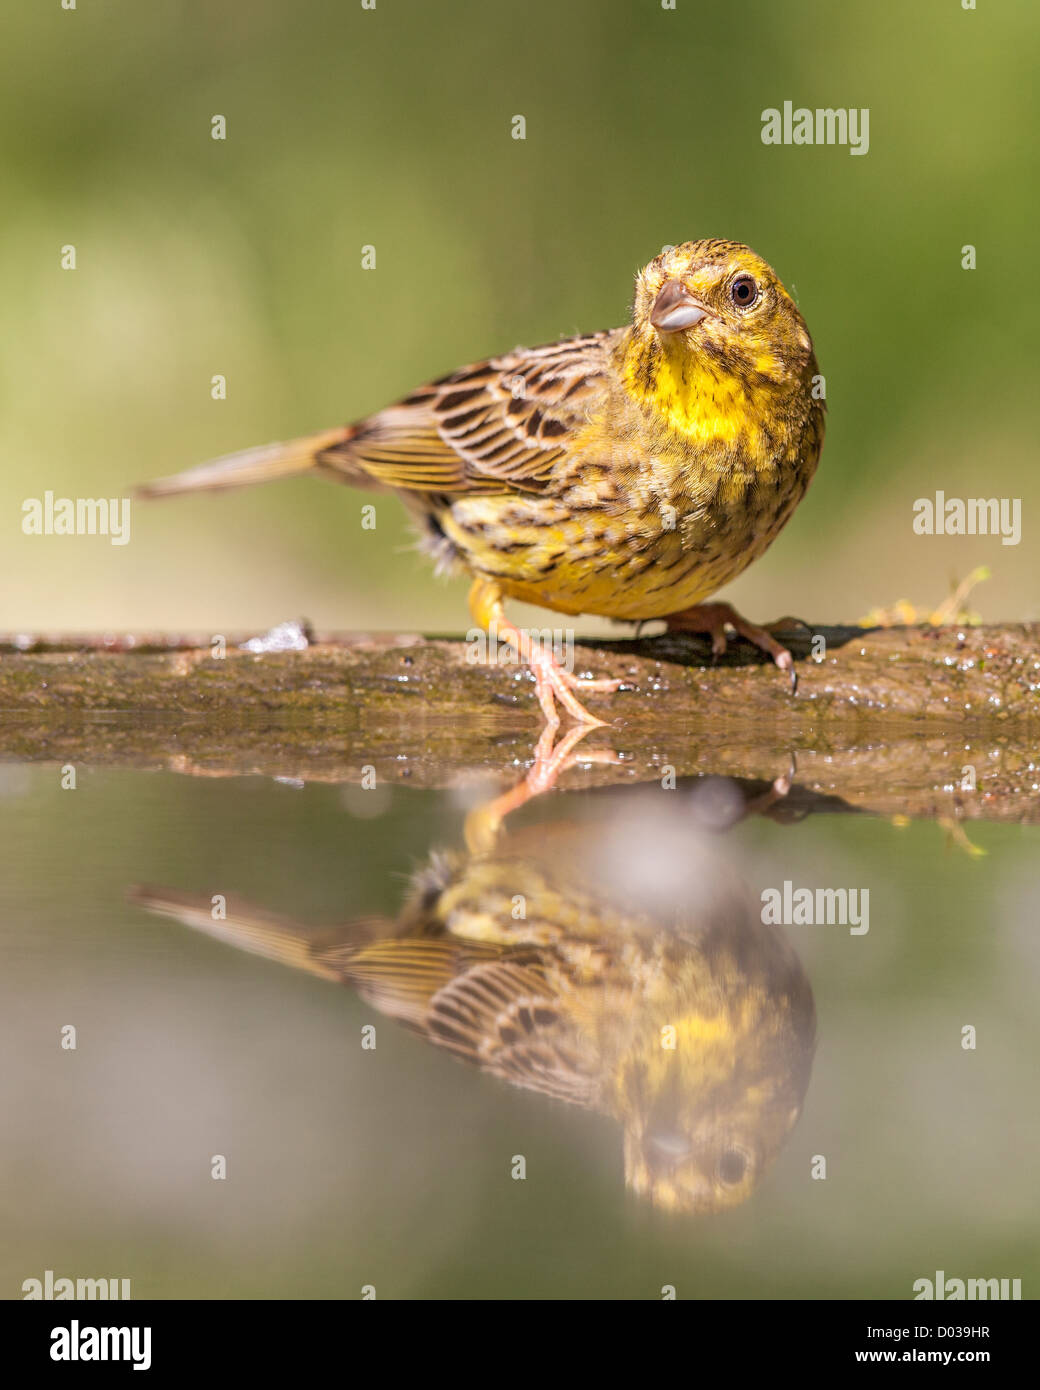 Yellowhammer (Emberiza citrinella) on the edge of a forest pool - Stock Image